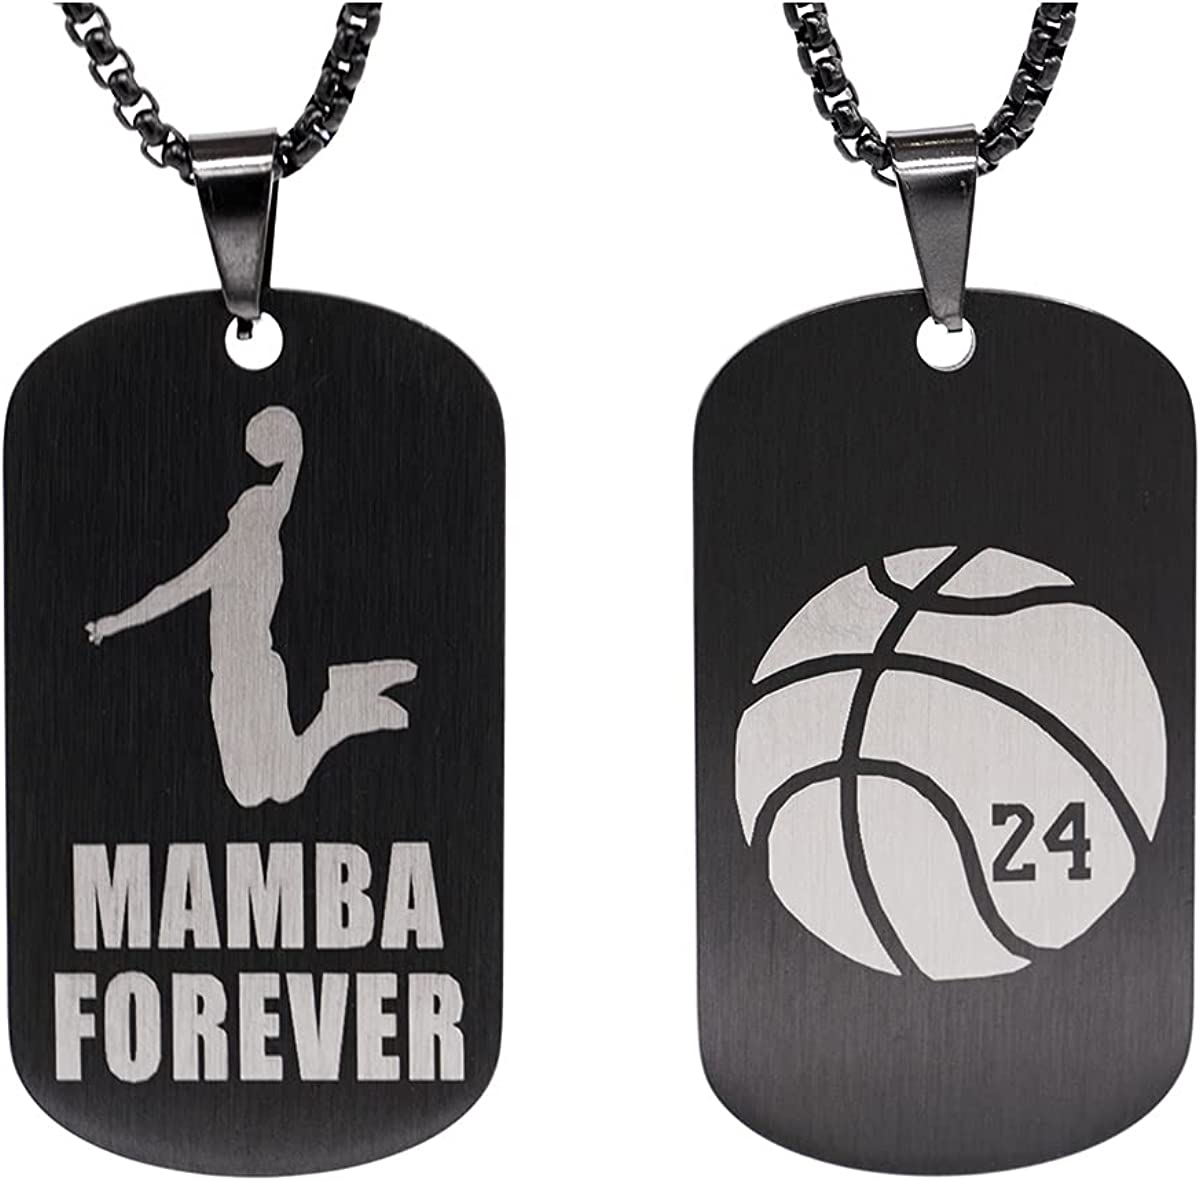 Black Mamba Pendant Basketball Necklace for Men Boys, Stainless Steel Memorial Souvenir Dog Tag Pendant Necklace, Military Tag with 27